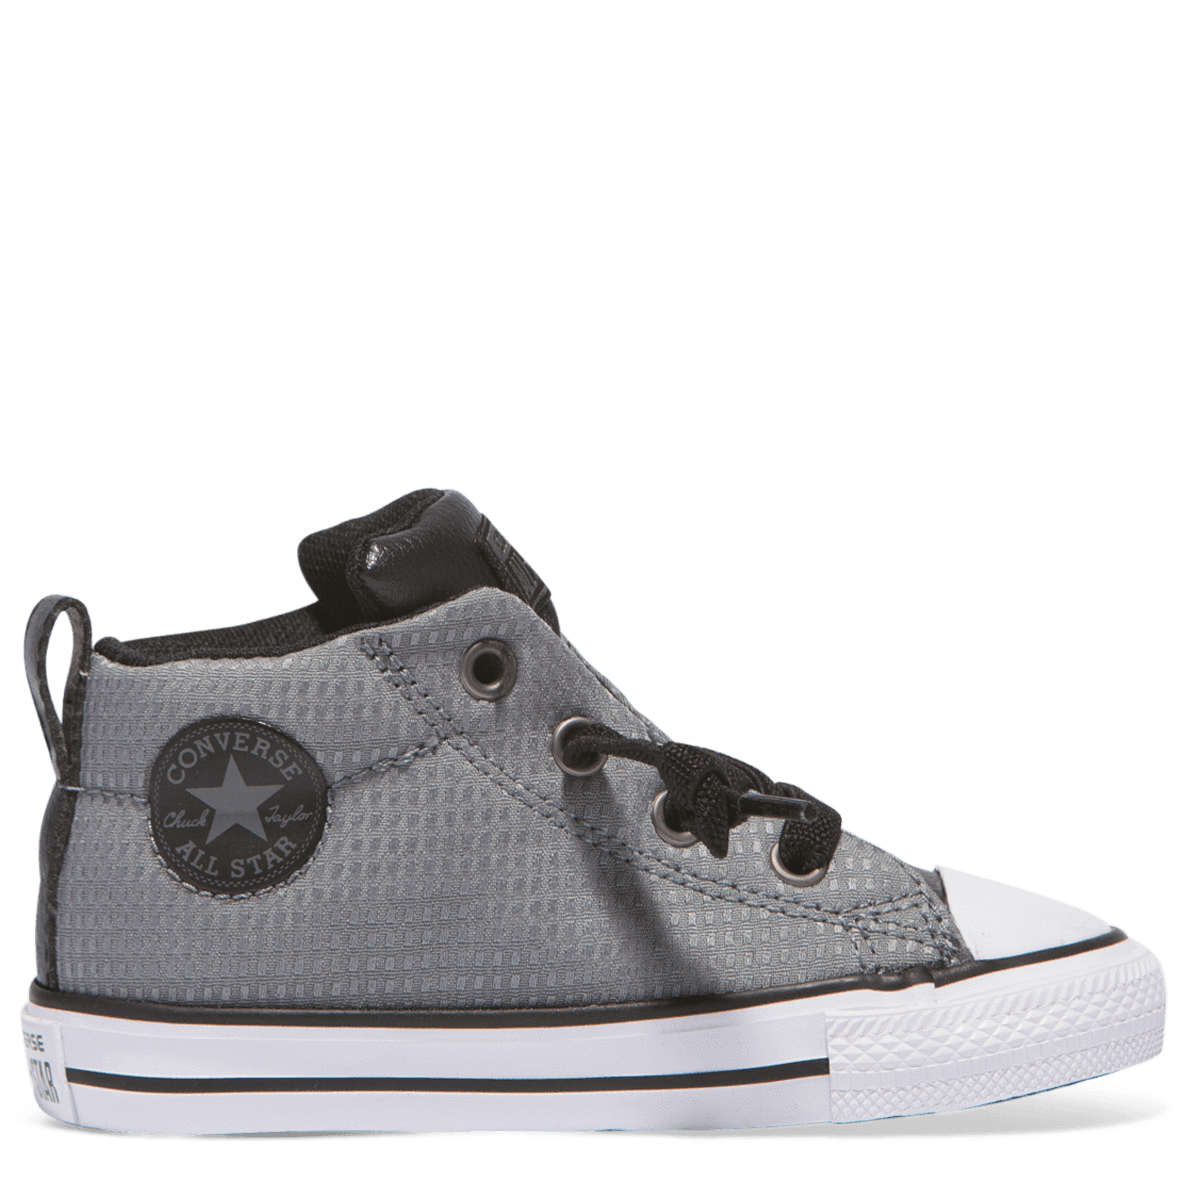 Converse transparent cool. Toddler back pack mid